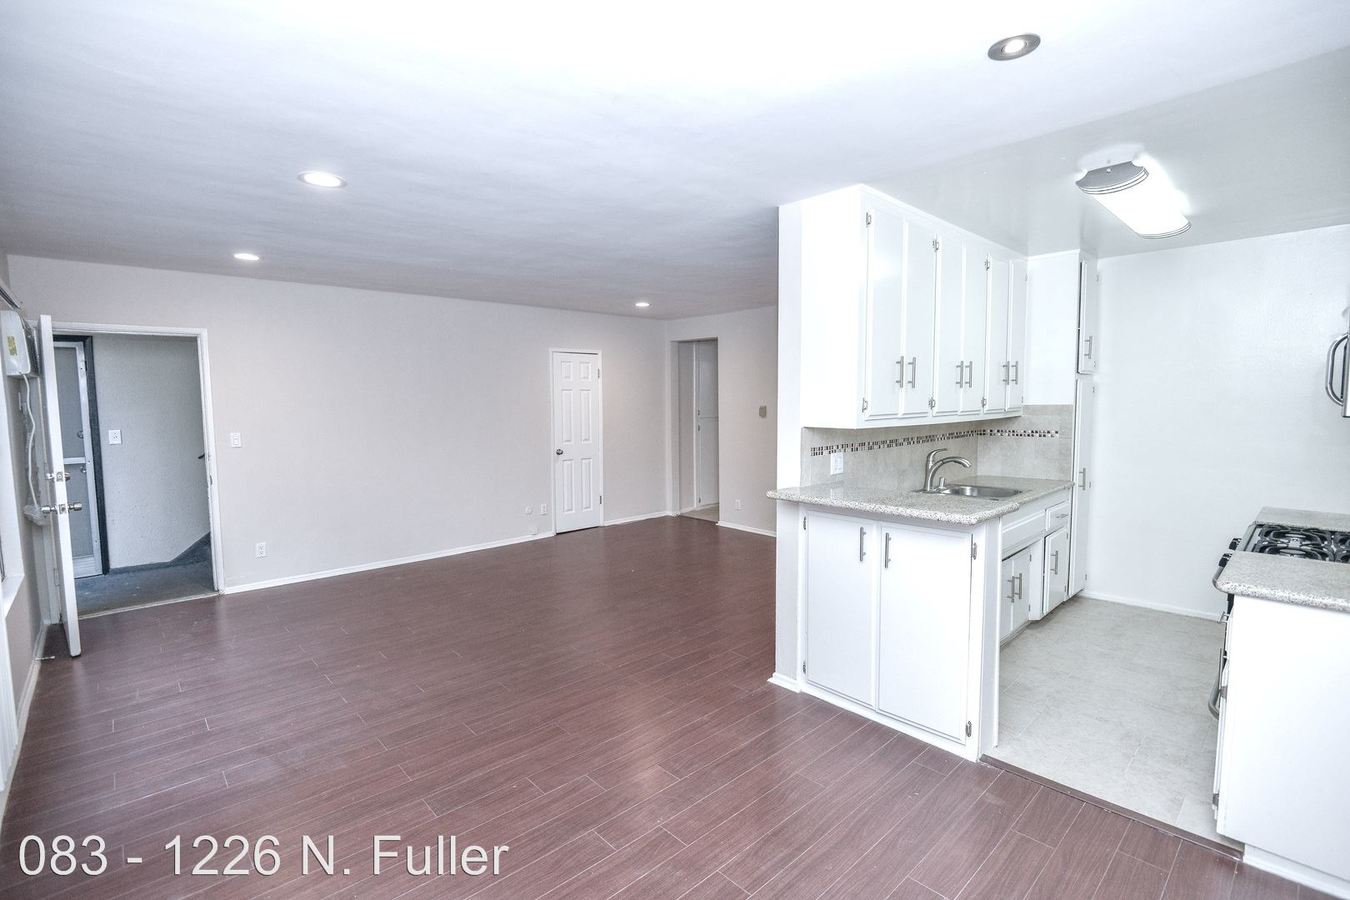 1 Bedroom 1 Bathroom Apartment for rent at 1226 N. Fuller Ave. in West Hollywood, CA